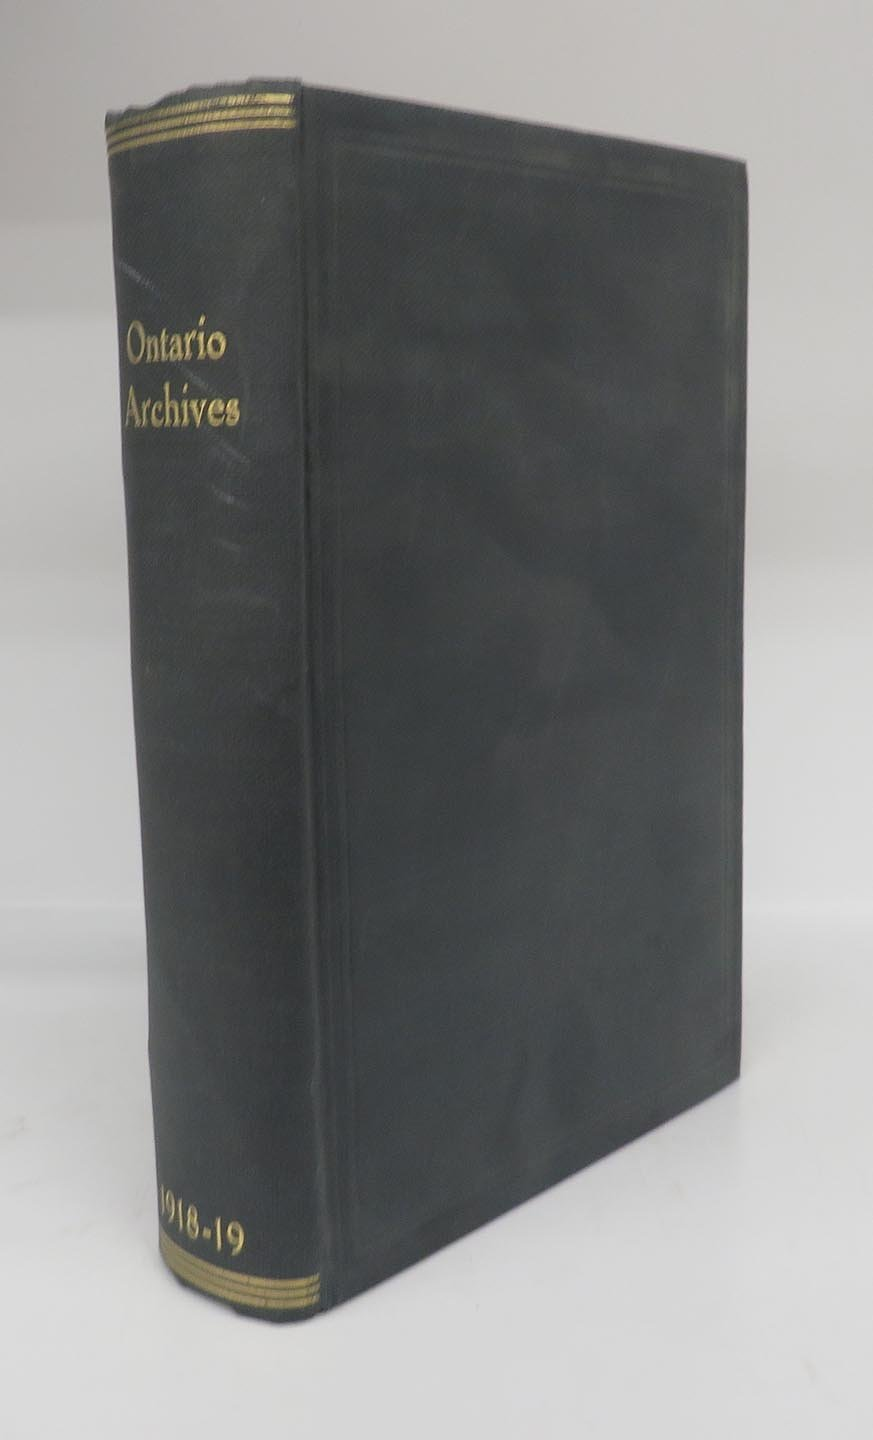 Fifteenth Report of the Bureau of Archives for the Province of Ontario, 1918-19